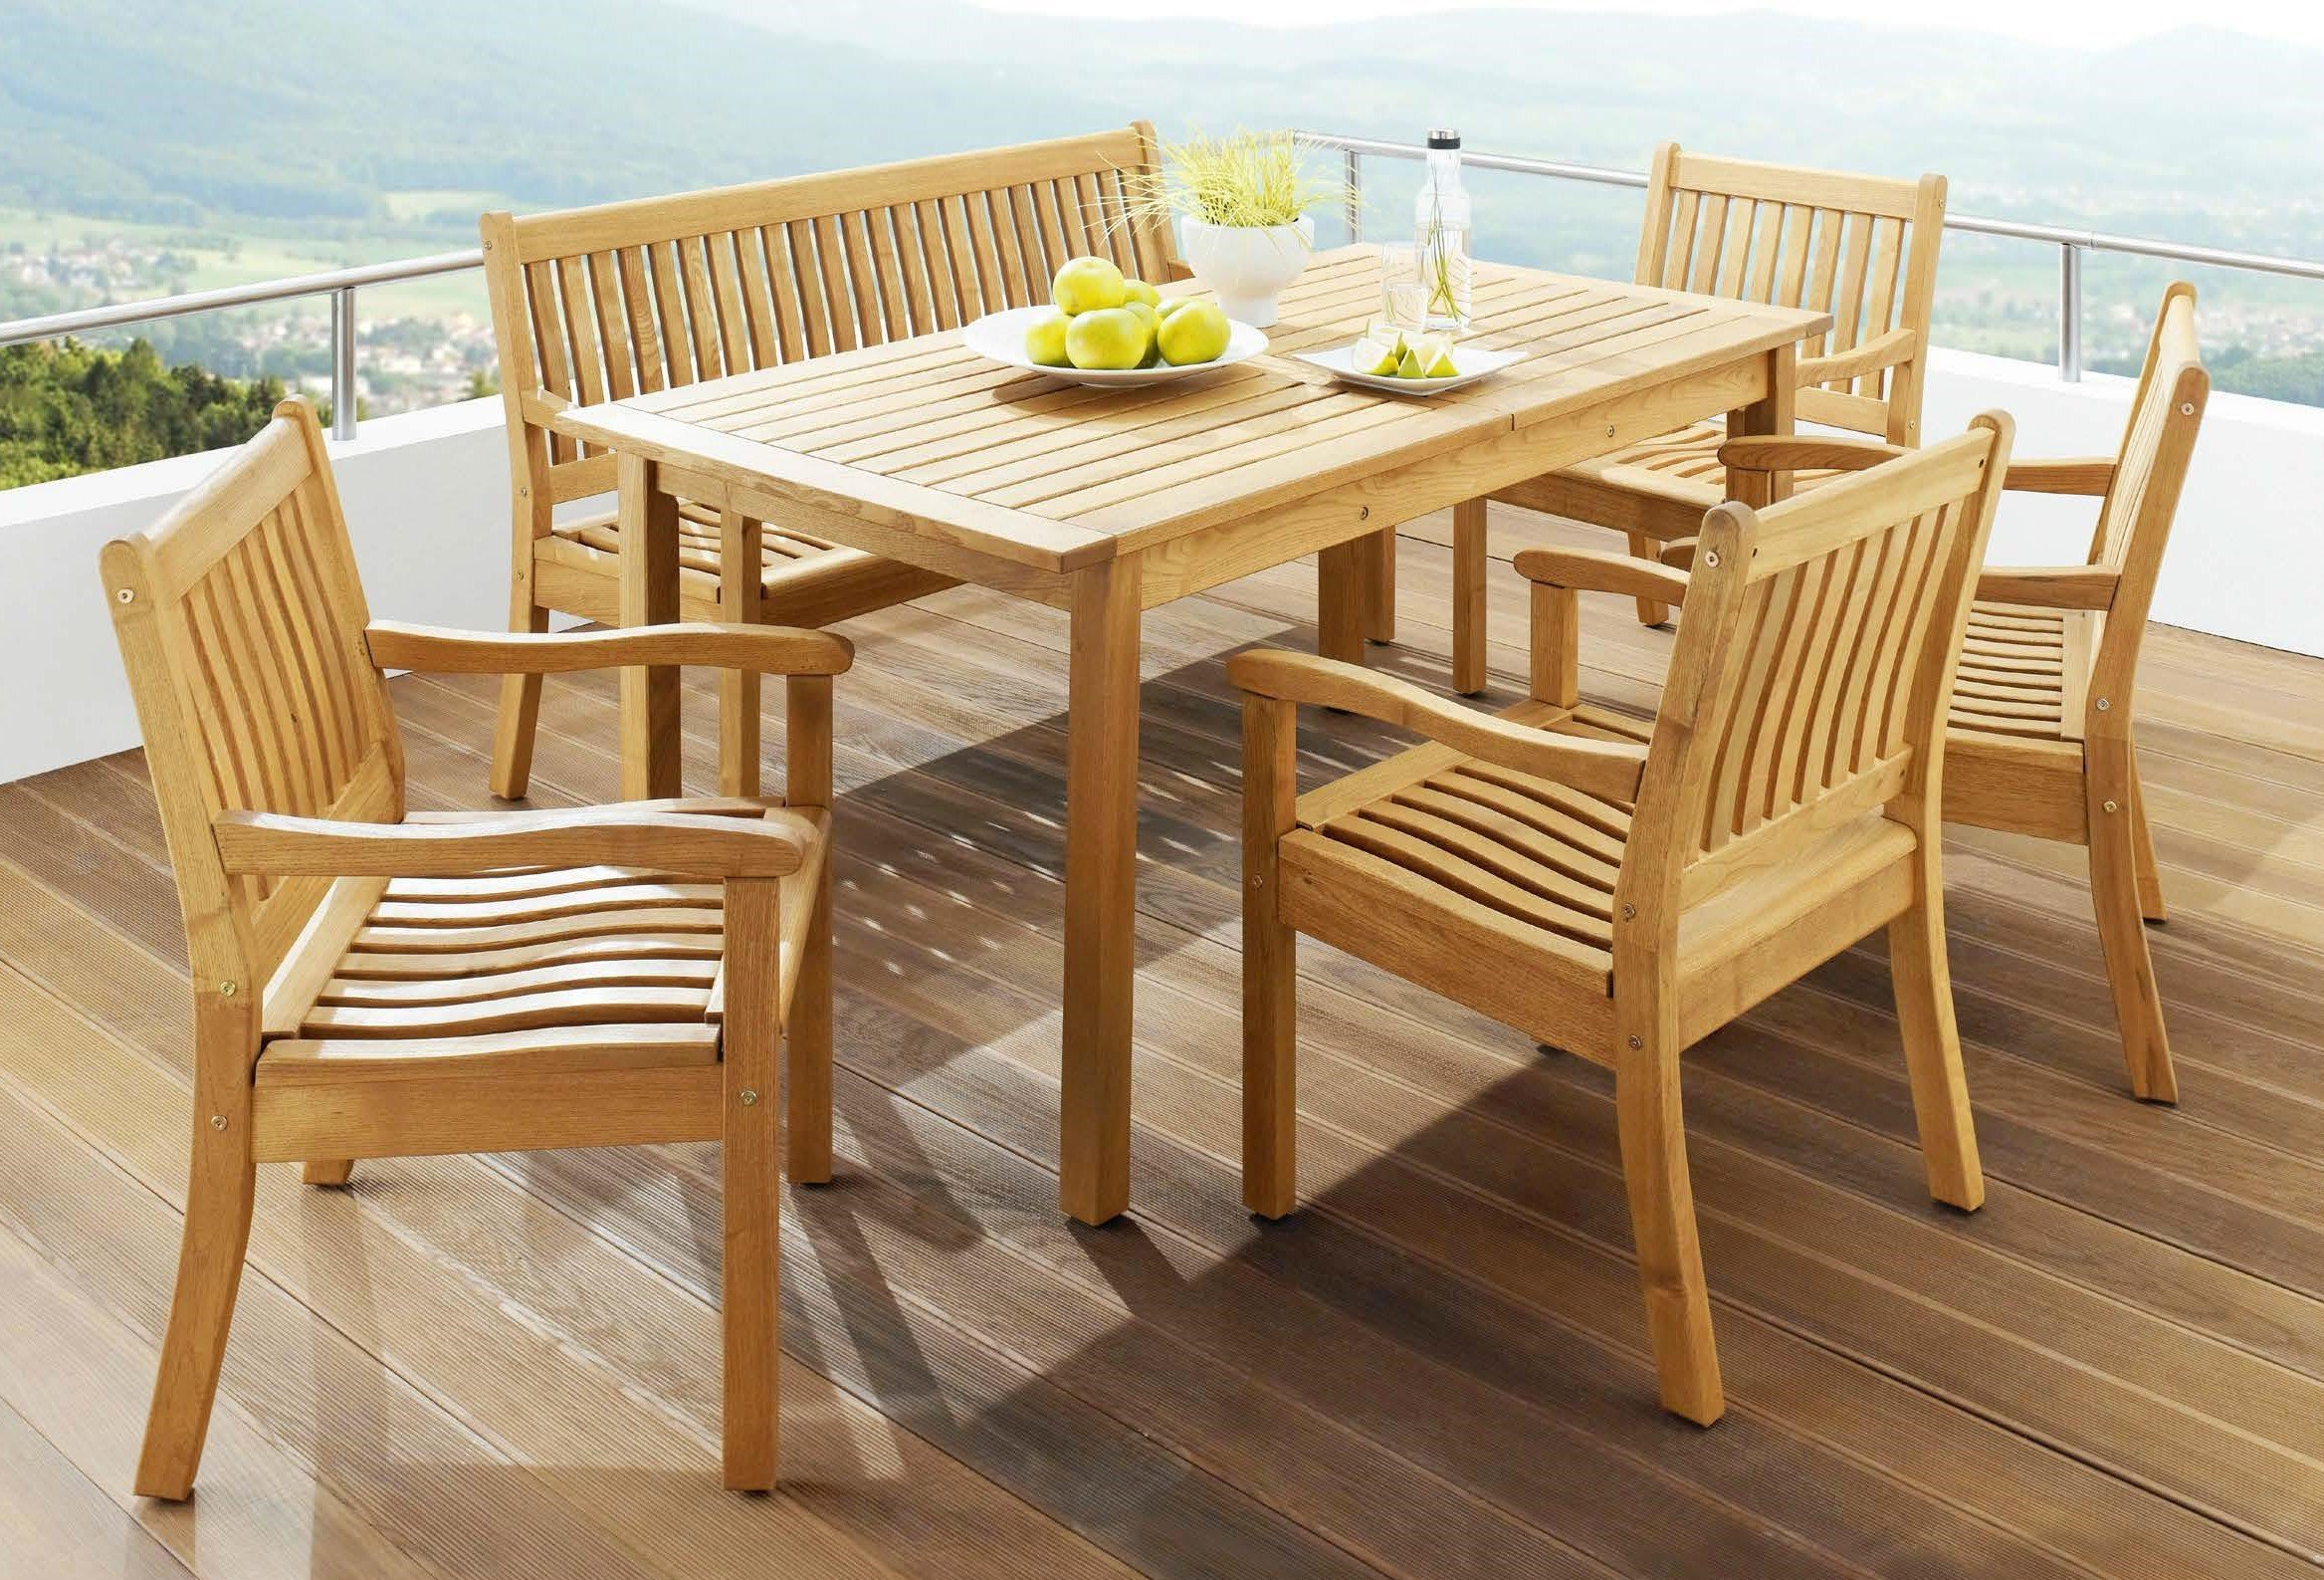 <p>Outdoor Furniture – Wooden Dining Collection Amalfi.</p> <p> </p> <p>Low-backed Armchairs, Rectangular Table & Bench.</p> <p> </p> <p>Ideal for Hotel Roof Terrace Bistros or Restaurants</p>